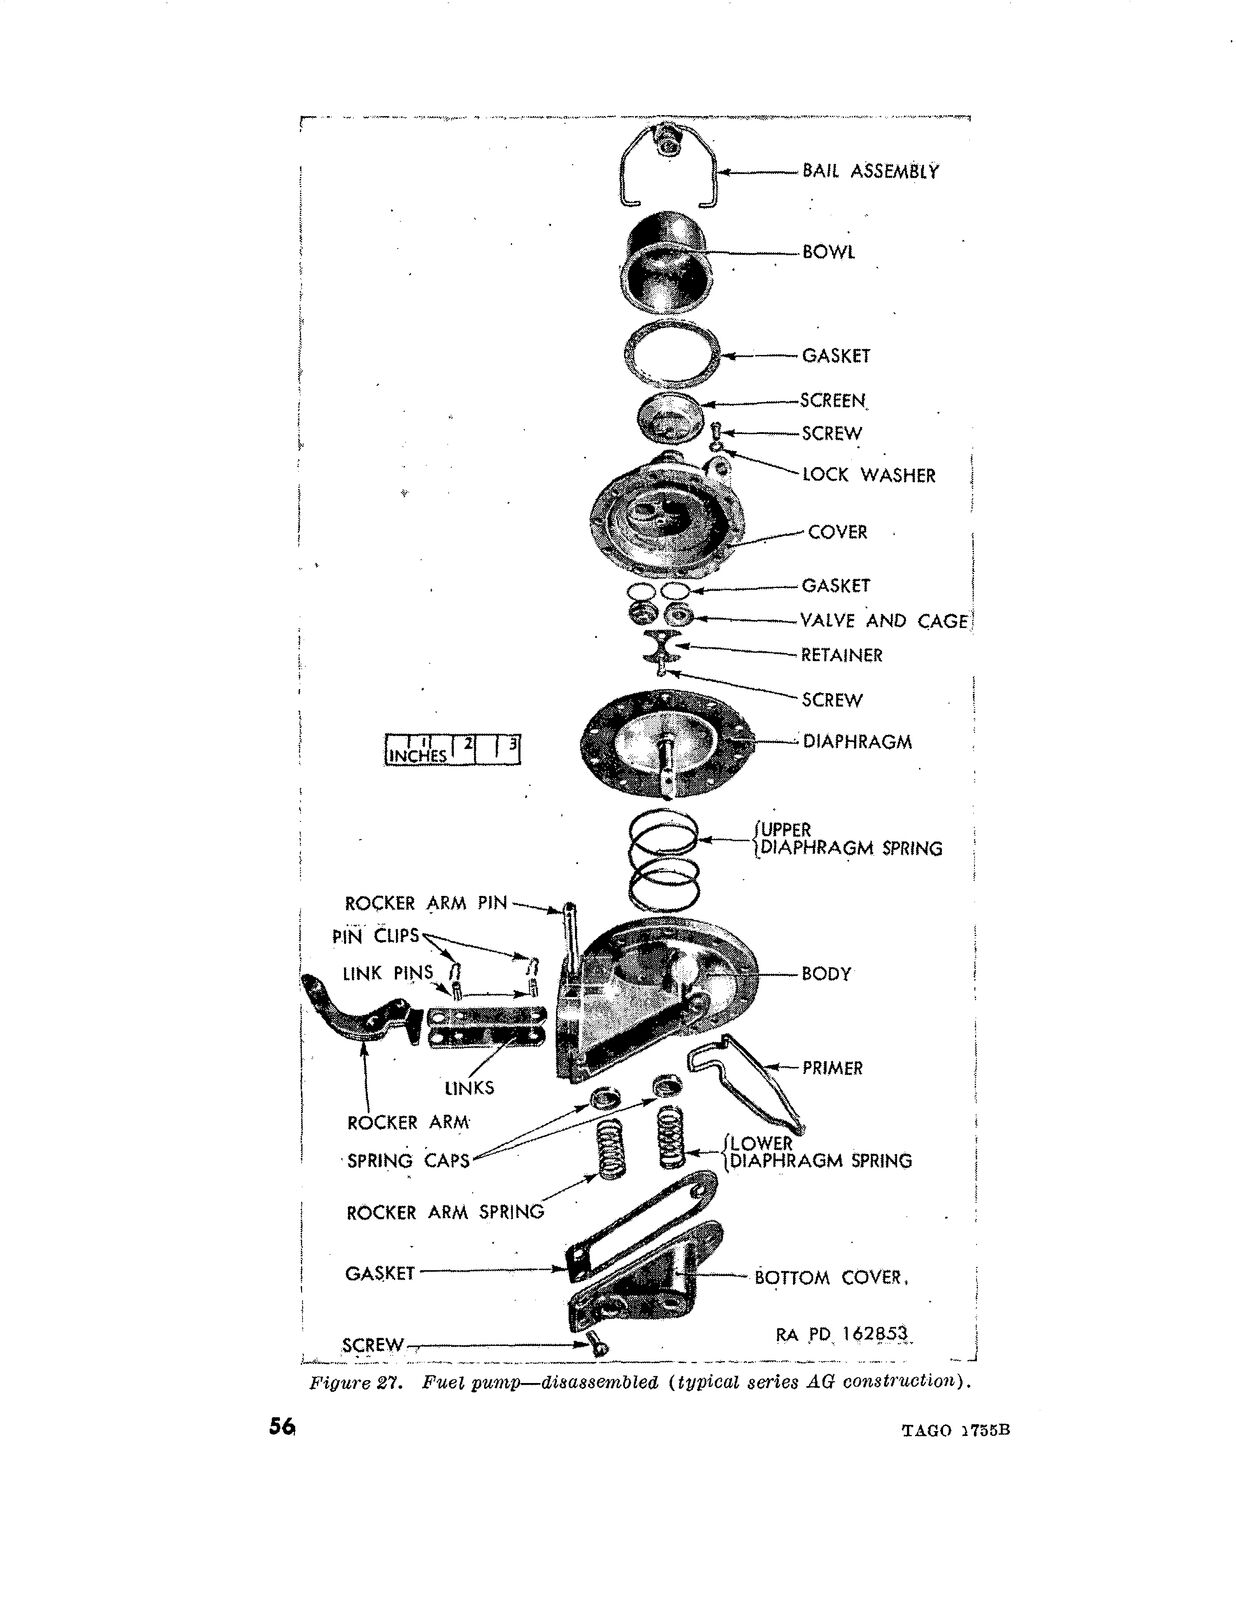 hight resolution of m38a1 wiring diagram page 2 wiring diagram and schematics cj3a wiring diagram cj5 wiring diagram squished